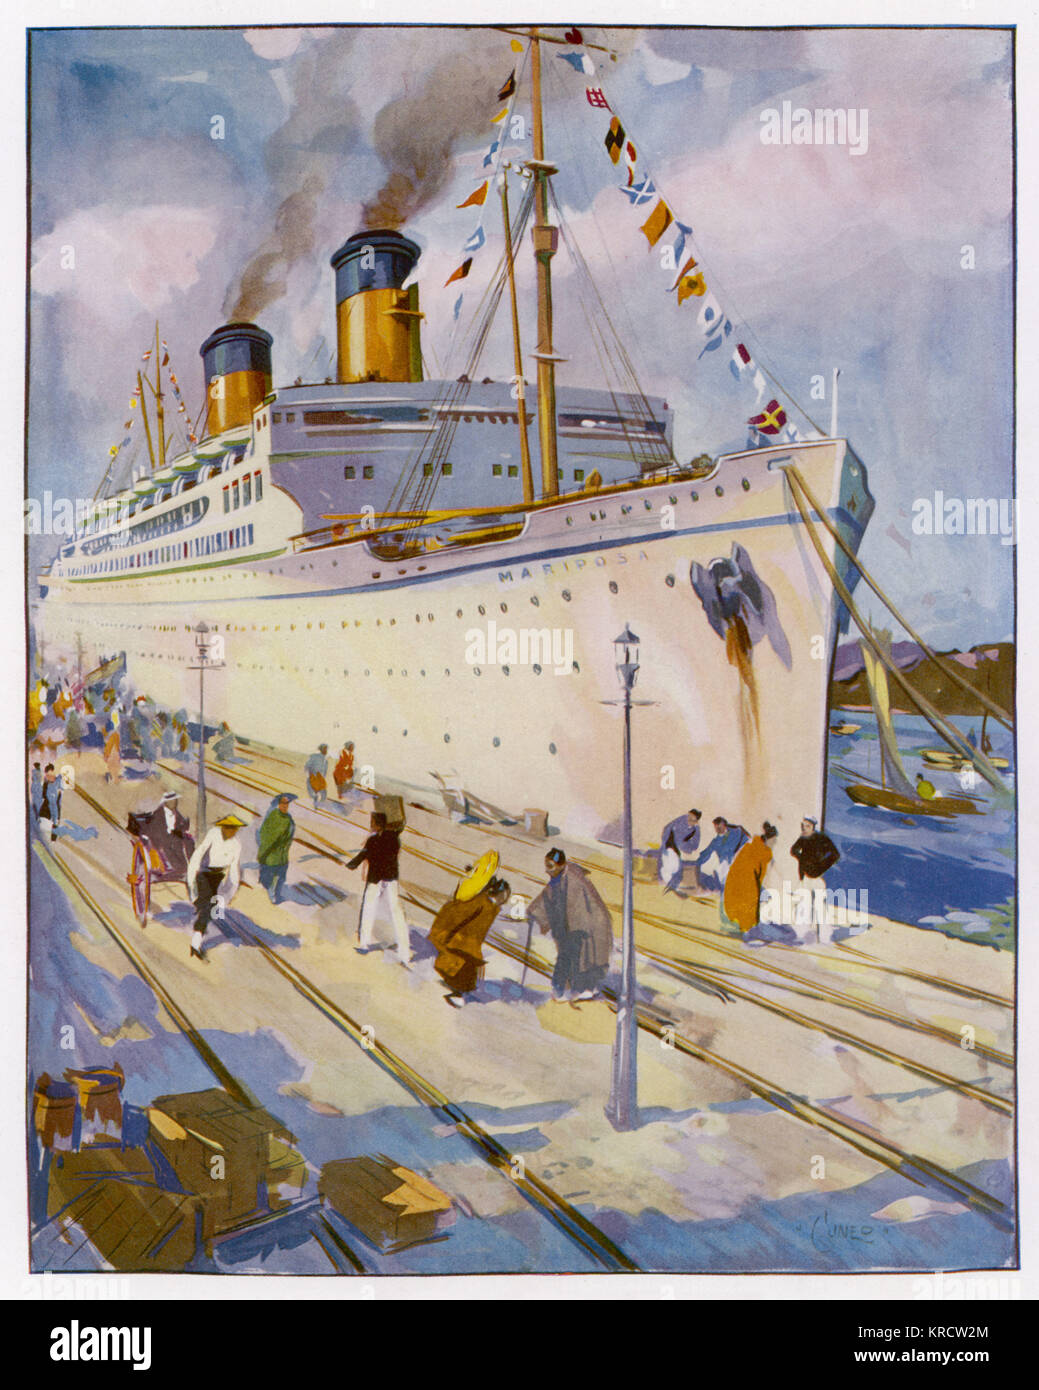 The Matson-Oceanic trans- Pacific liner. Later sold and renamed S.S. Homeric. Damaged in a fire at sea in 1973, - Stock Image